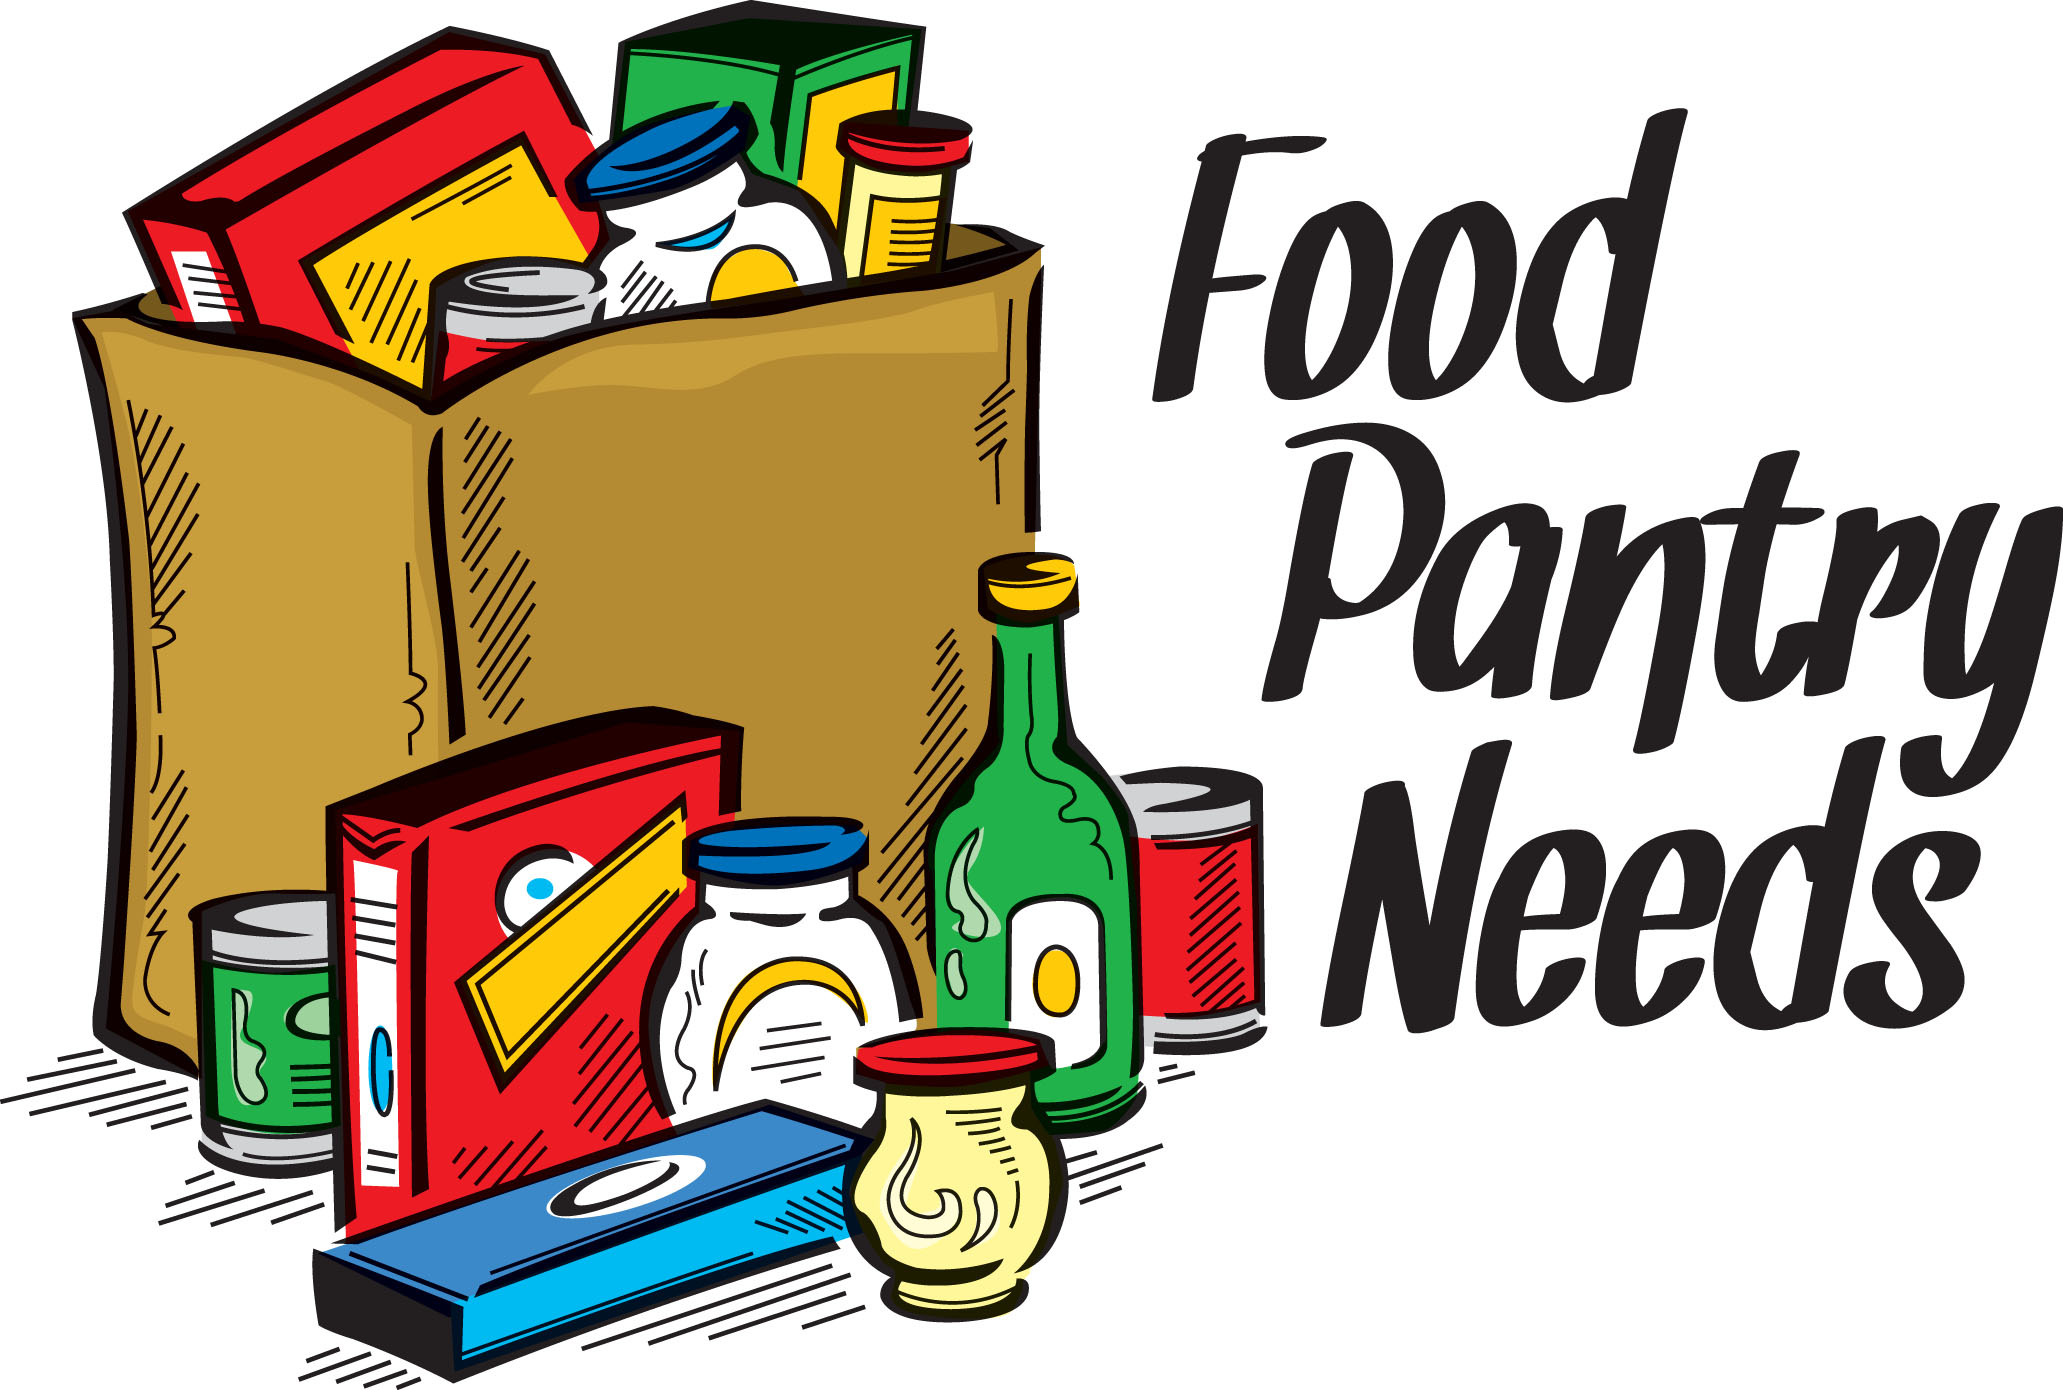 Donate food clipart.